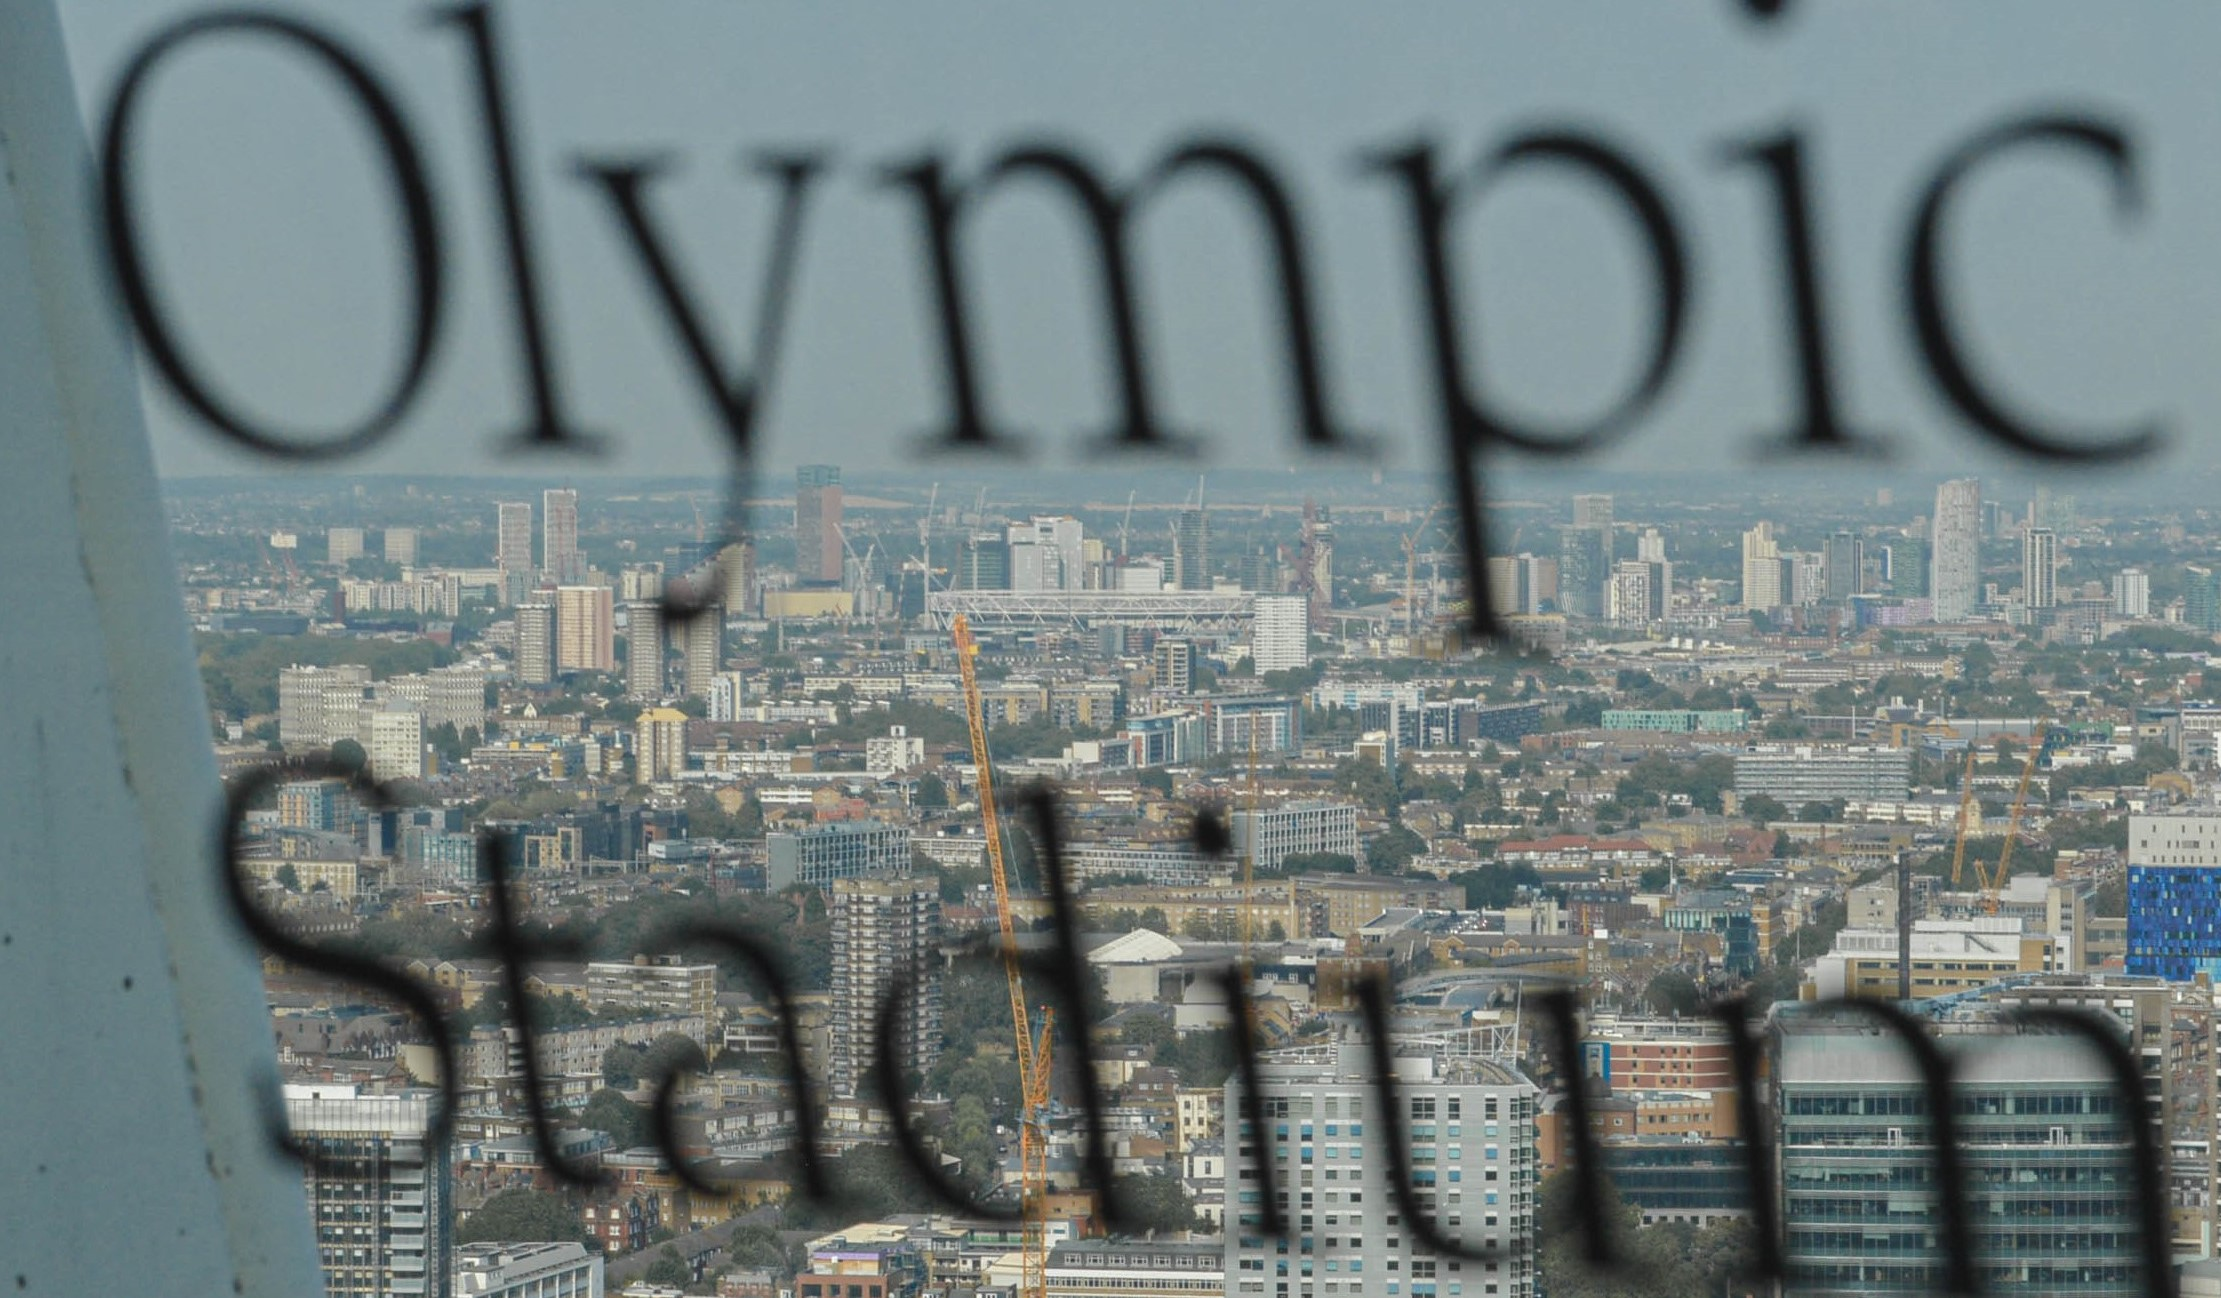 Looking out to Olympic Stadium